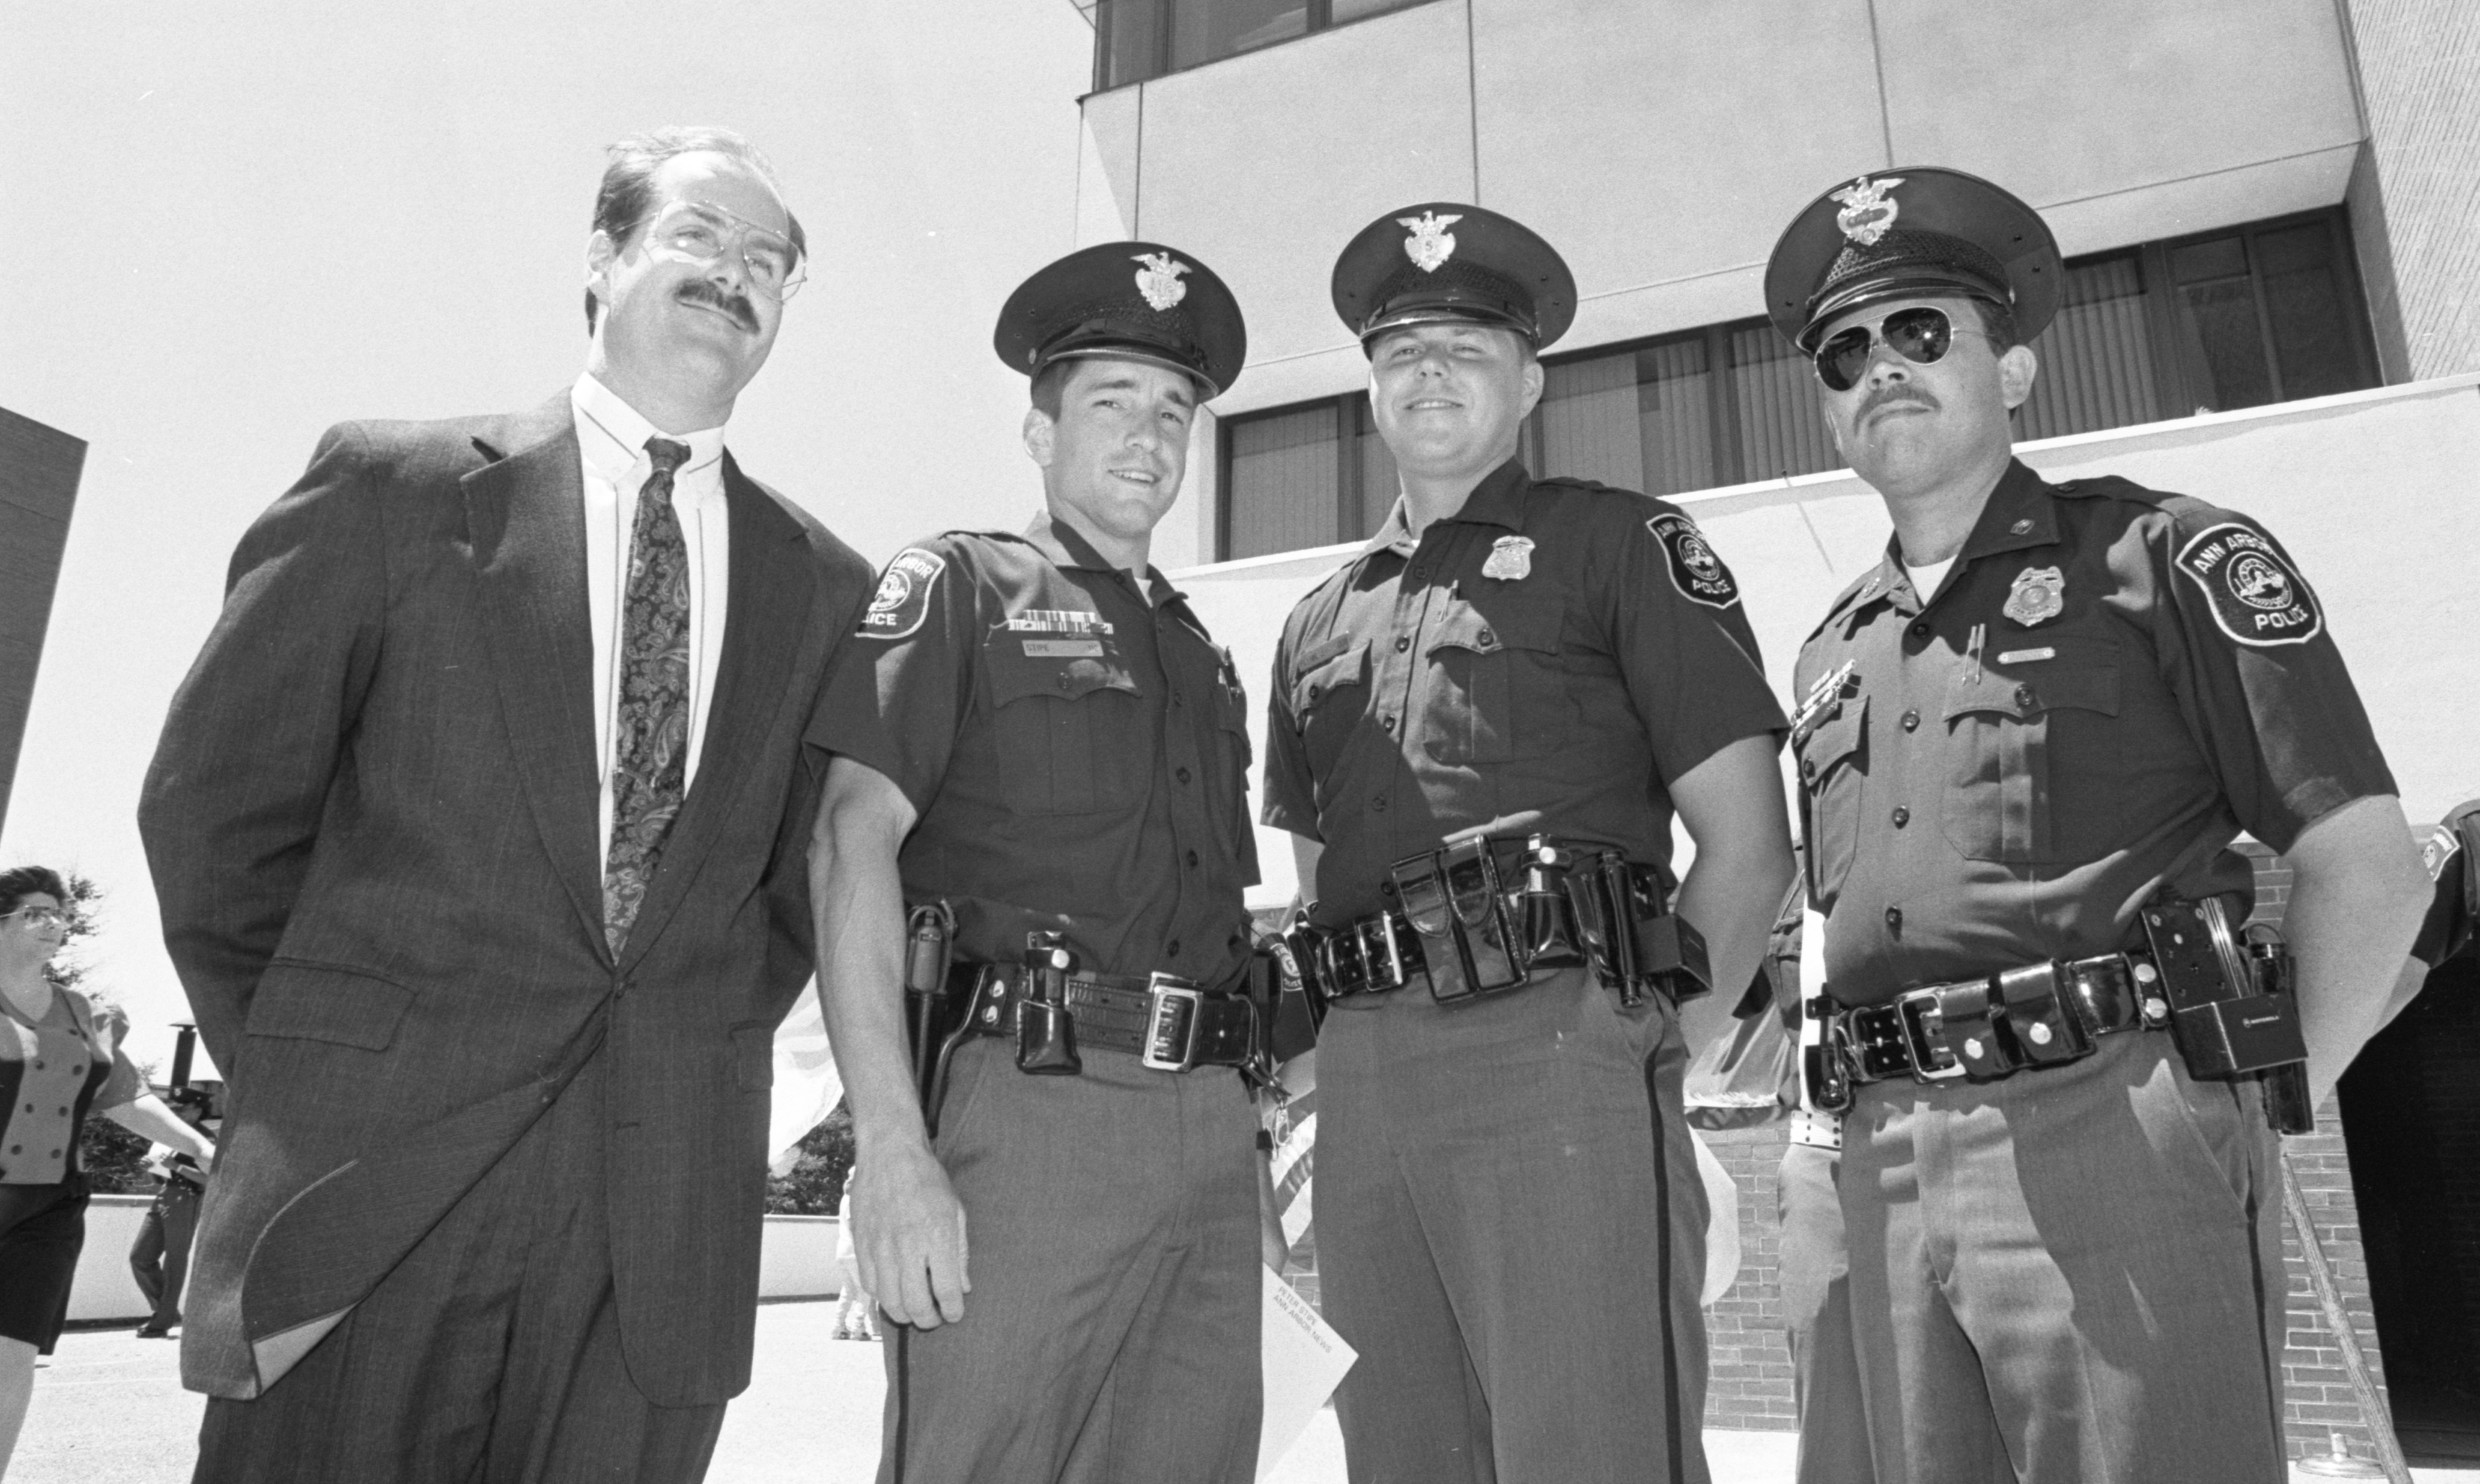 Thomas Tanner, Peter Stipe, Jeffrey Flynn, & John King Of The Ann Arbor Police Department, Recipients Of The Ann Arbor News Award Of Valor, June 1991 image